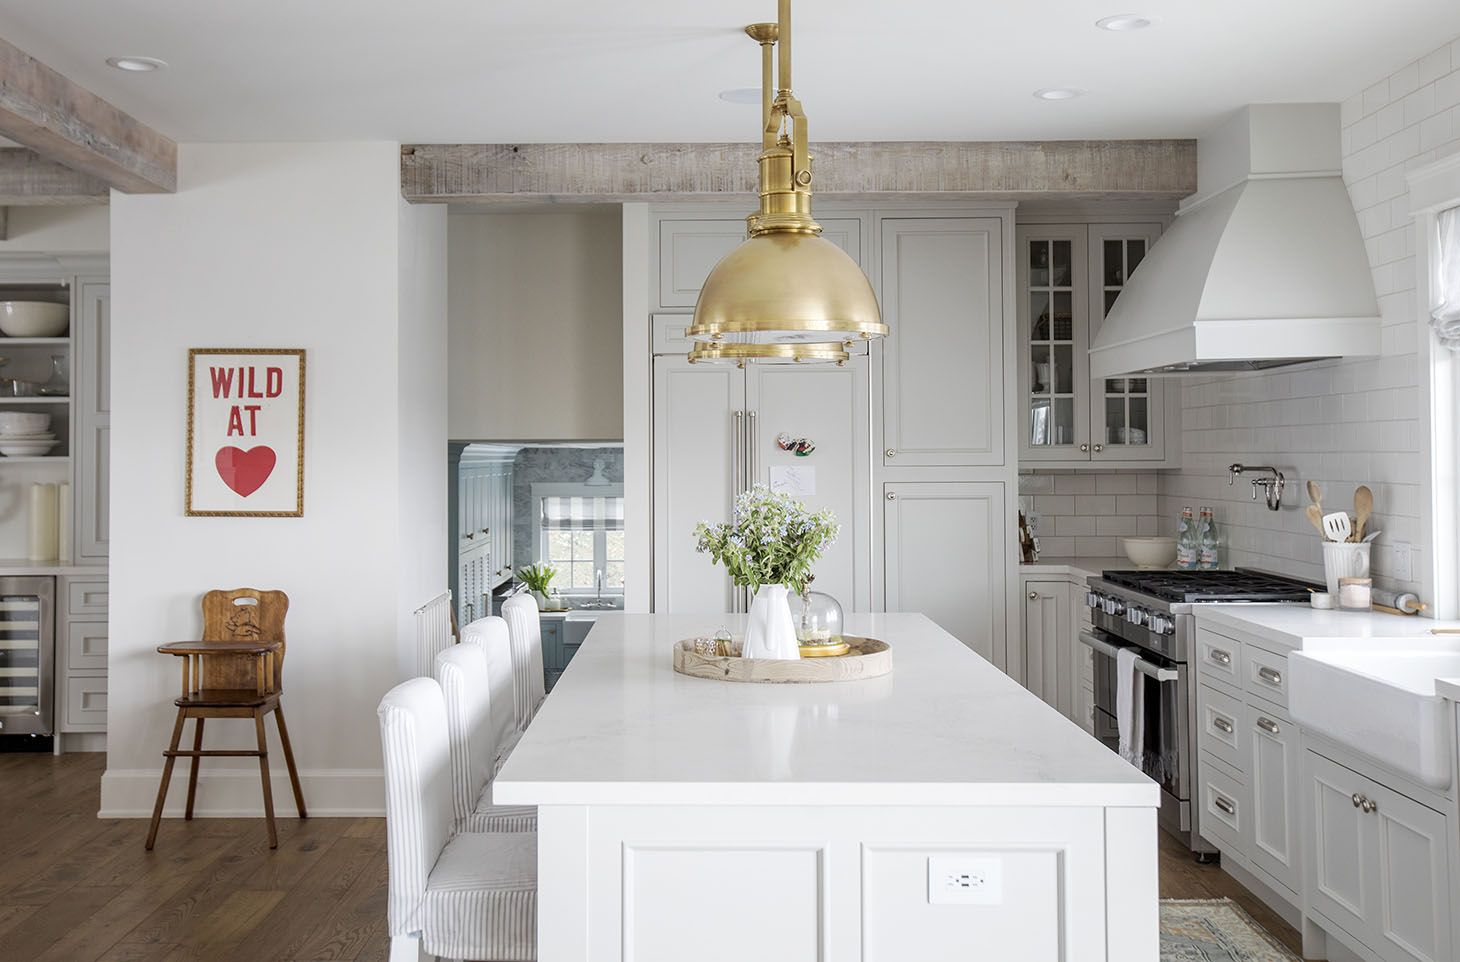 Home Tour Series: Kitchen and Dining Room